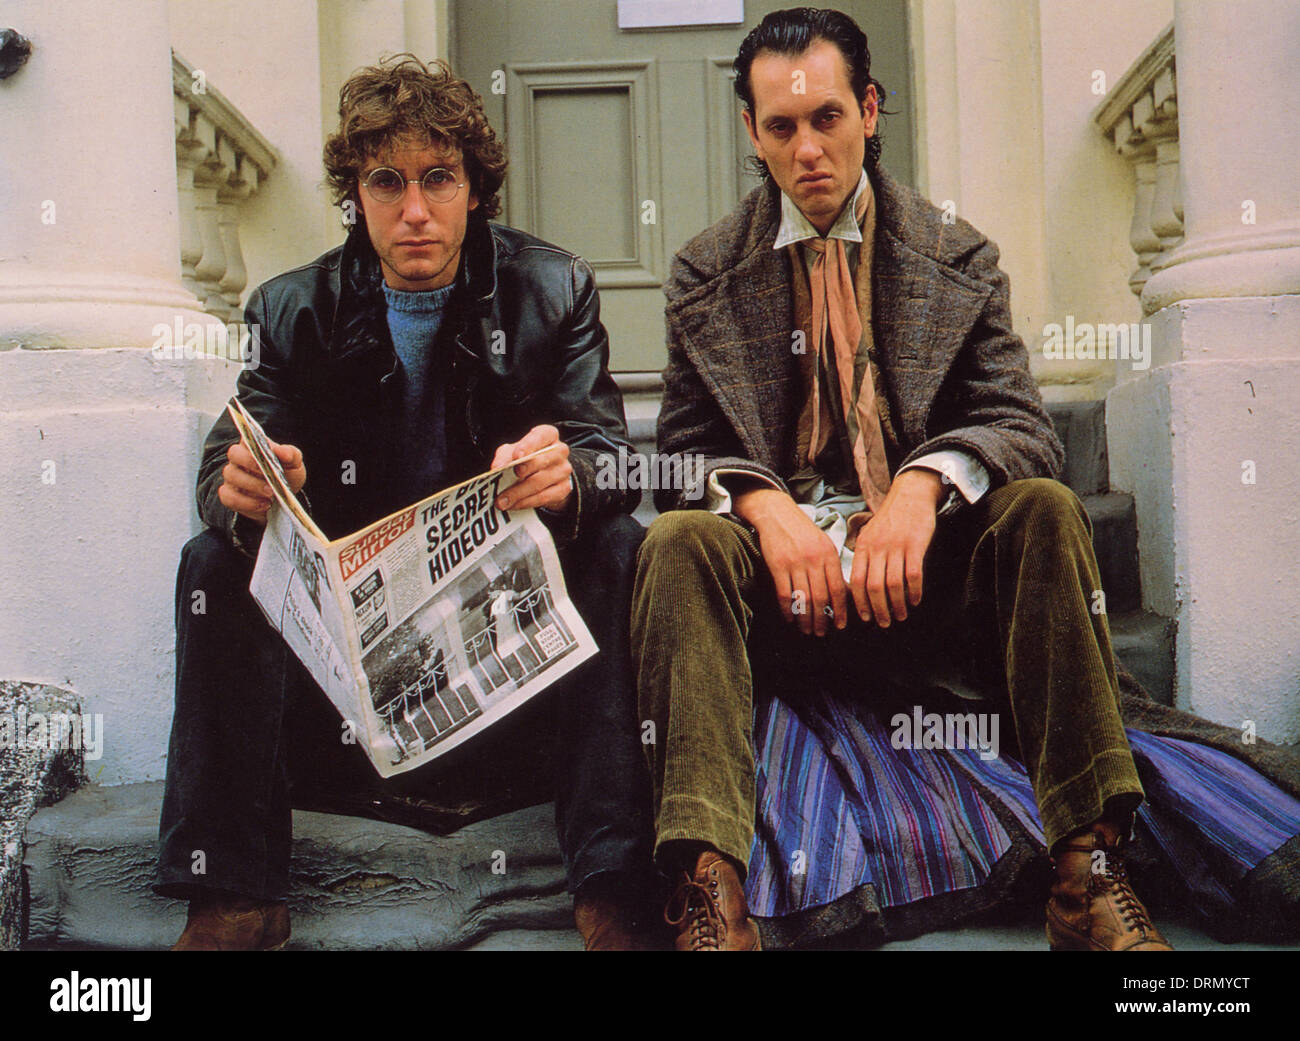 WITHNAIL AND I 1987 Handmade Films production with Paul McGann at left and Richard E Grant - Stock Image